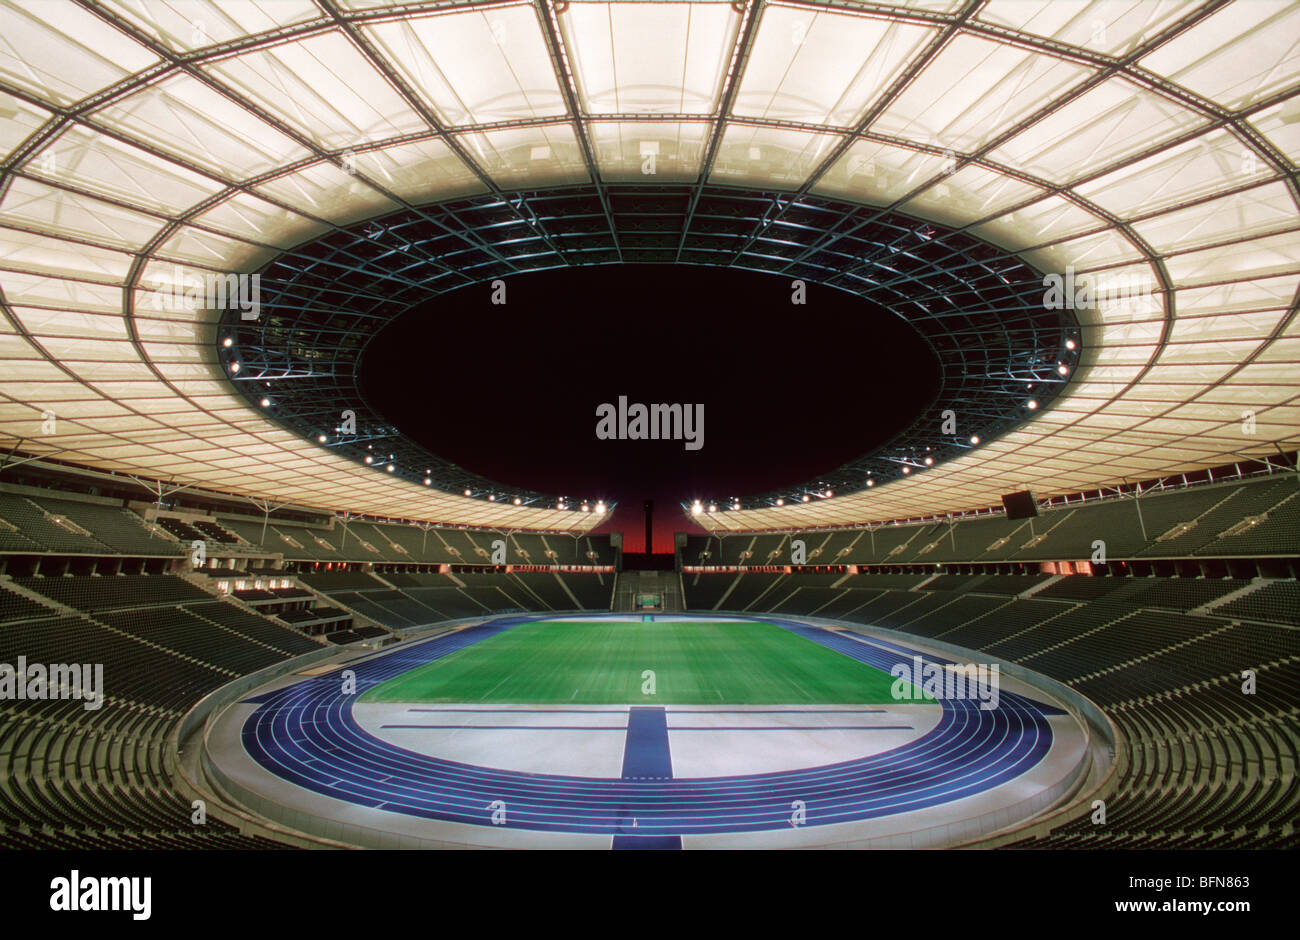 Olympiastadion by Werner March 1936. Restored with new roof structure by von Gerkan Marg Partner in 2004. Berlin. - Stock Image